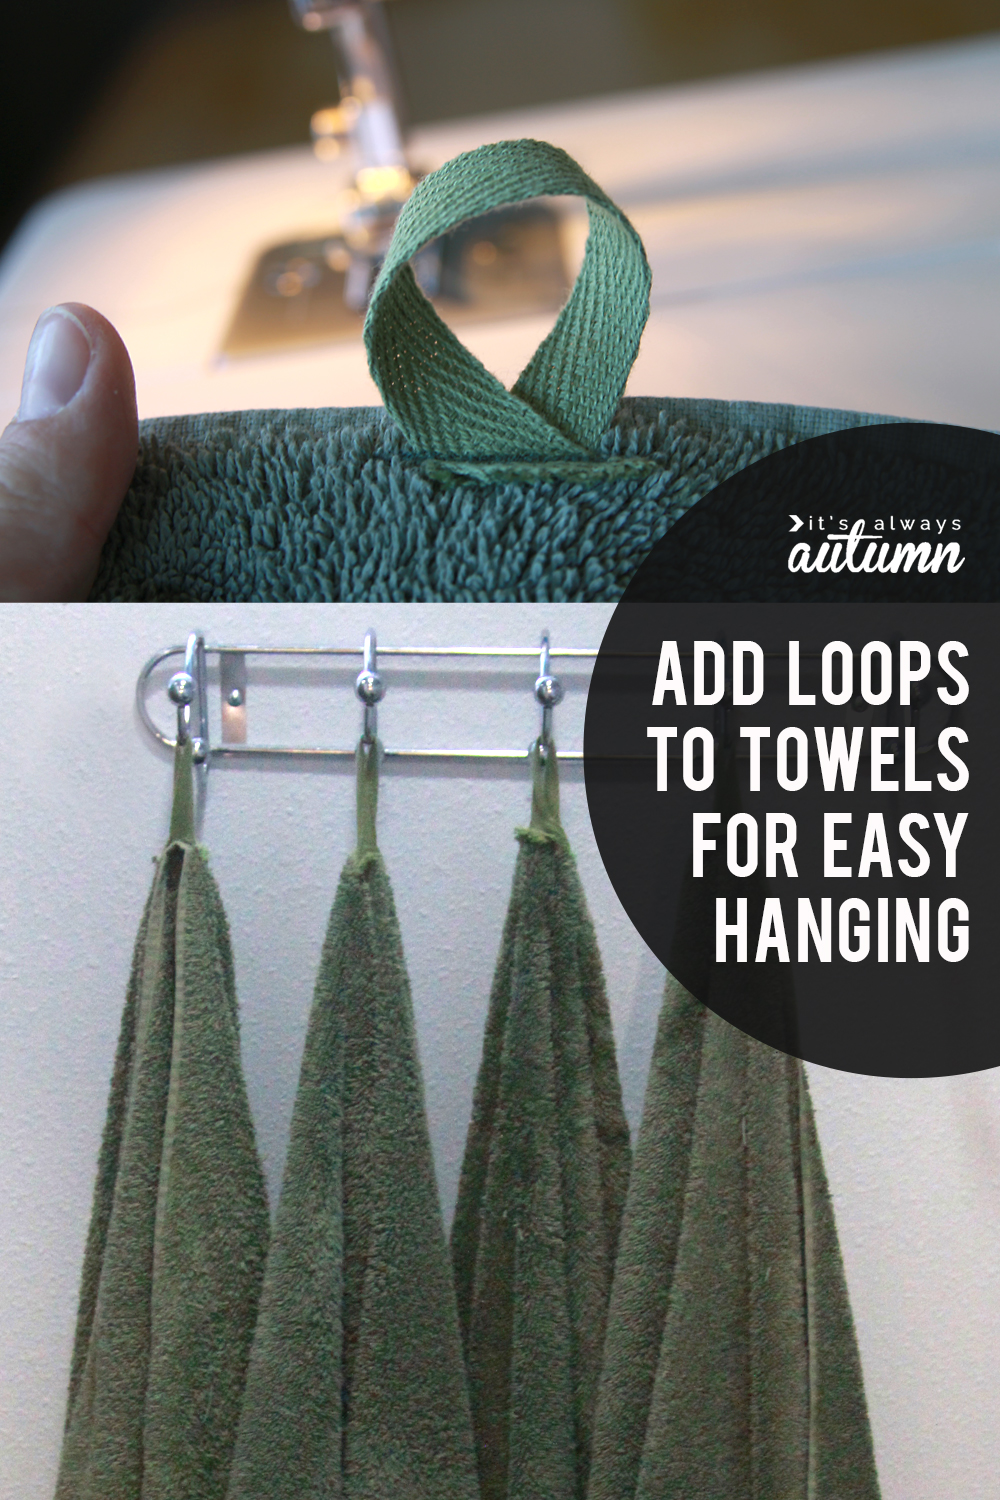 Tired of towels on the ground? Sew on loops for easy hanging!